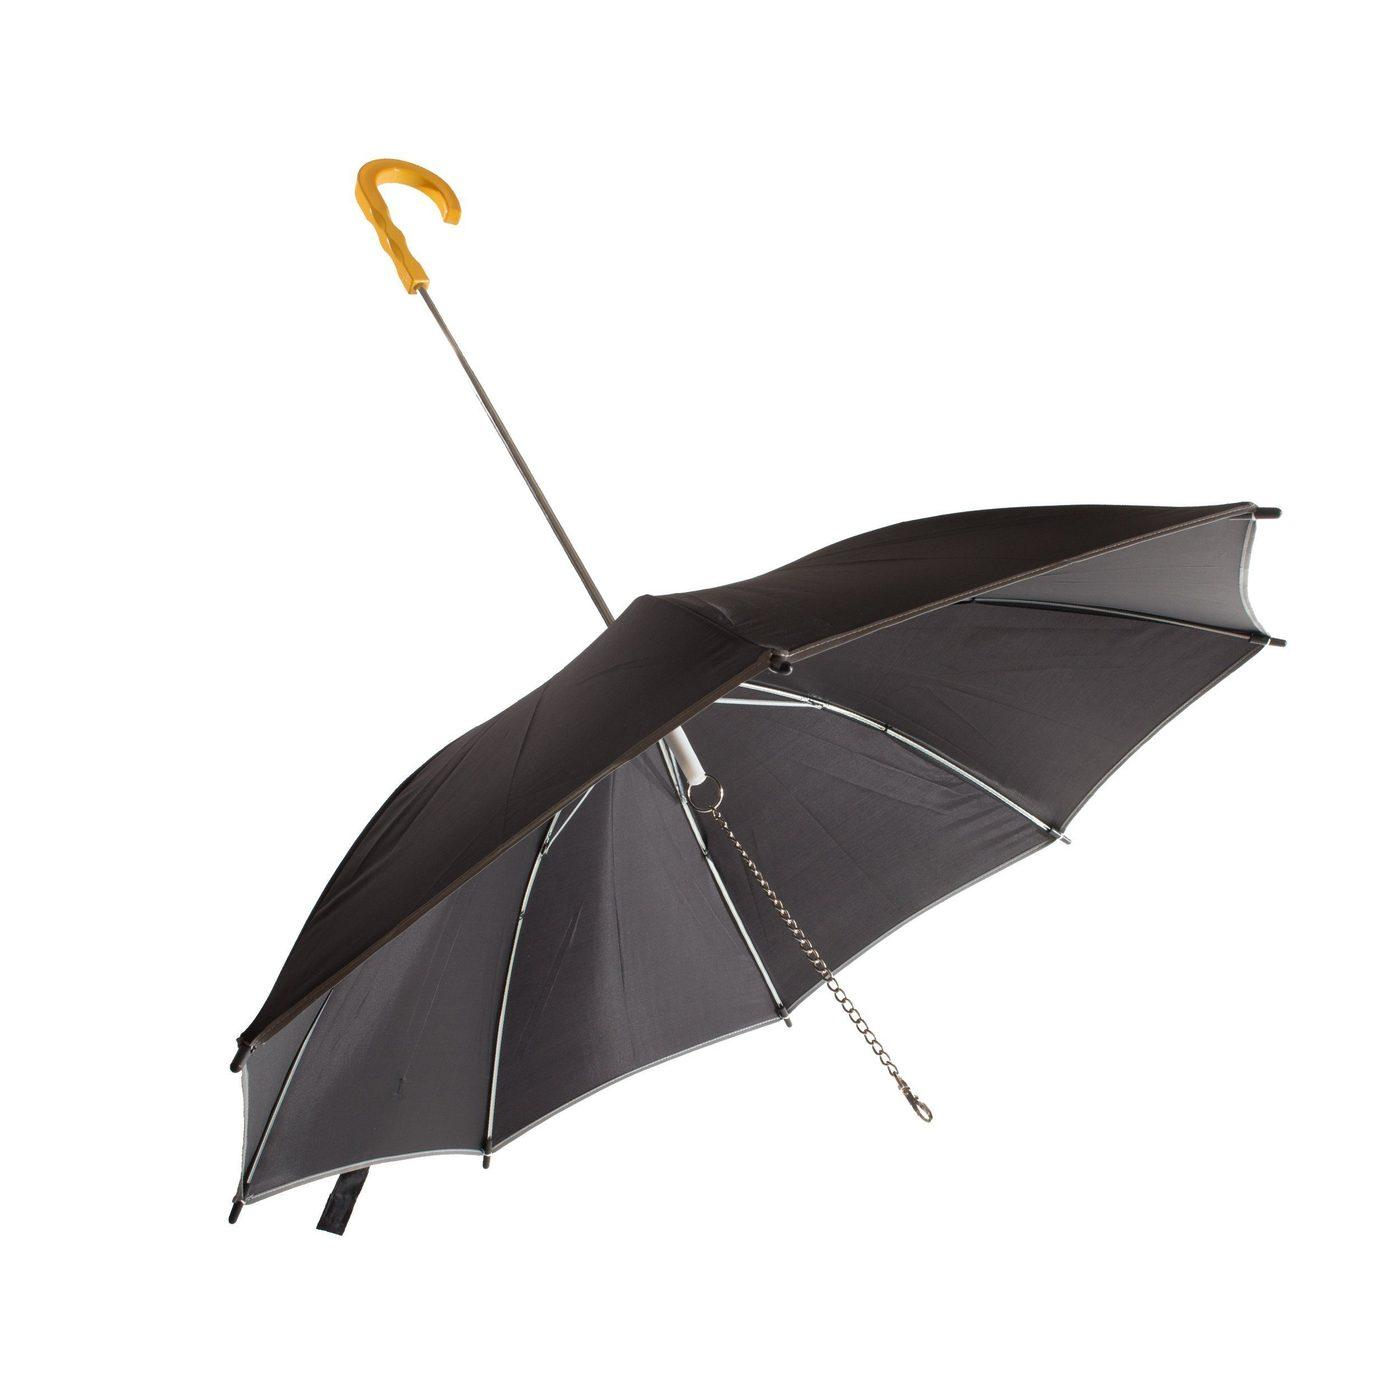 Pet Life 'Pour-Protection' Performance Dog Umbrella - Black with Yellow Handle